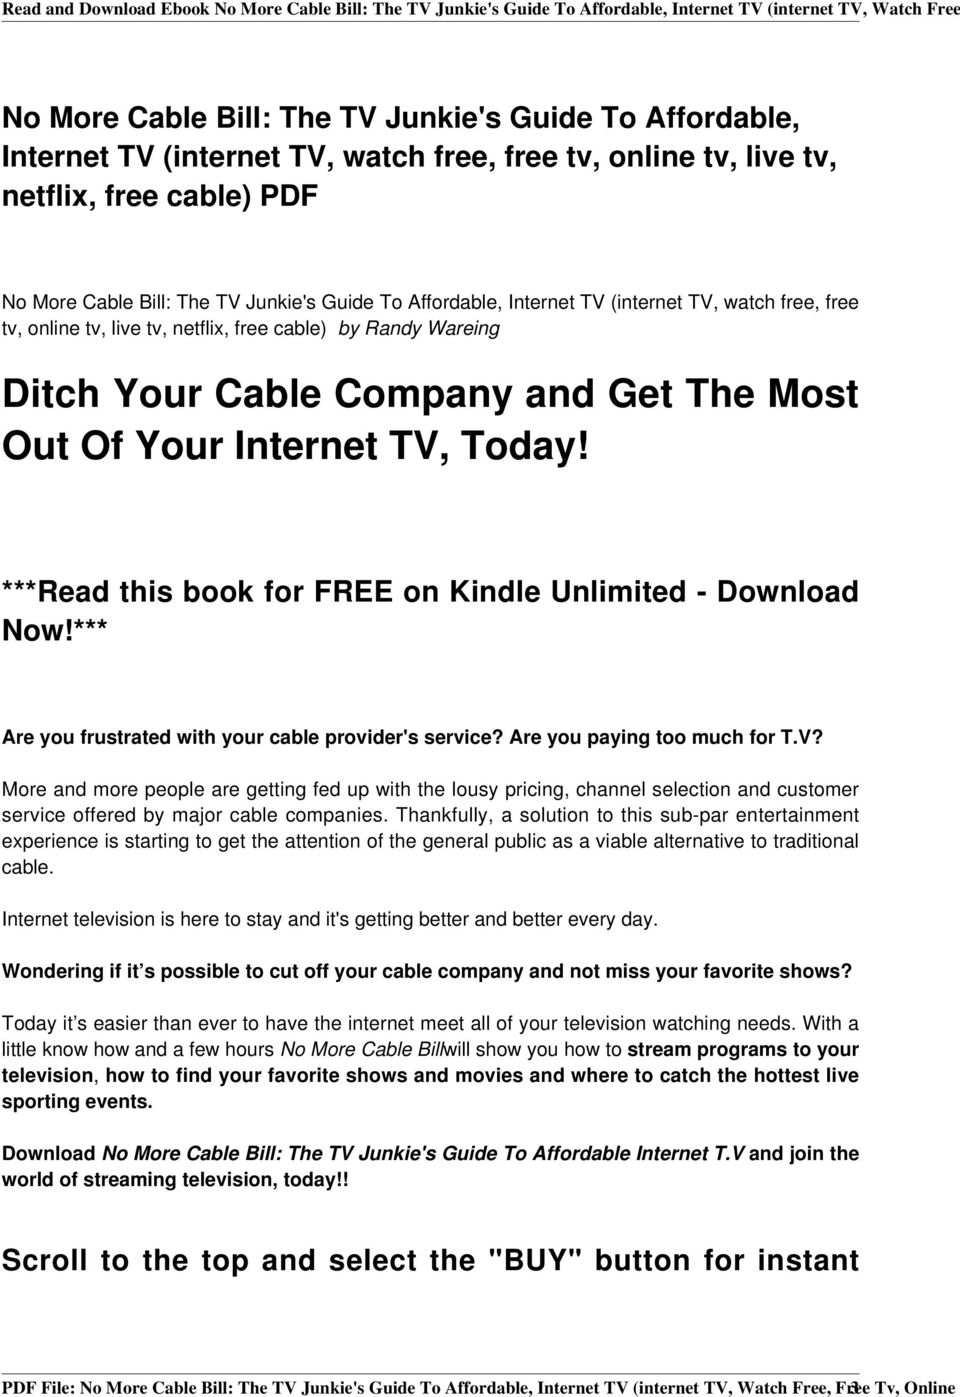 Read and Download Ebook No More Cable Bill: The TV Junkie's Guide To